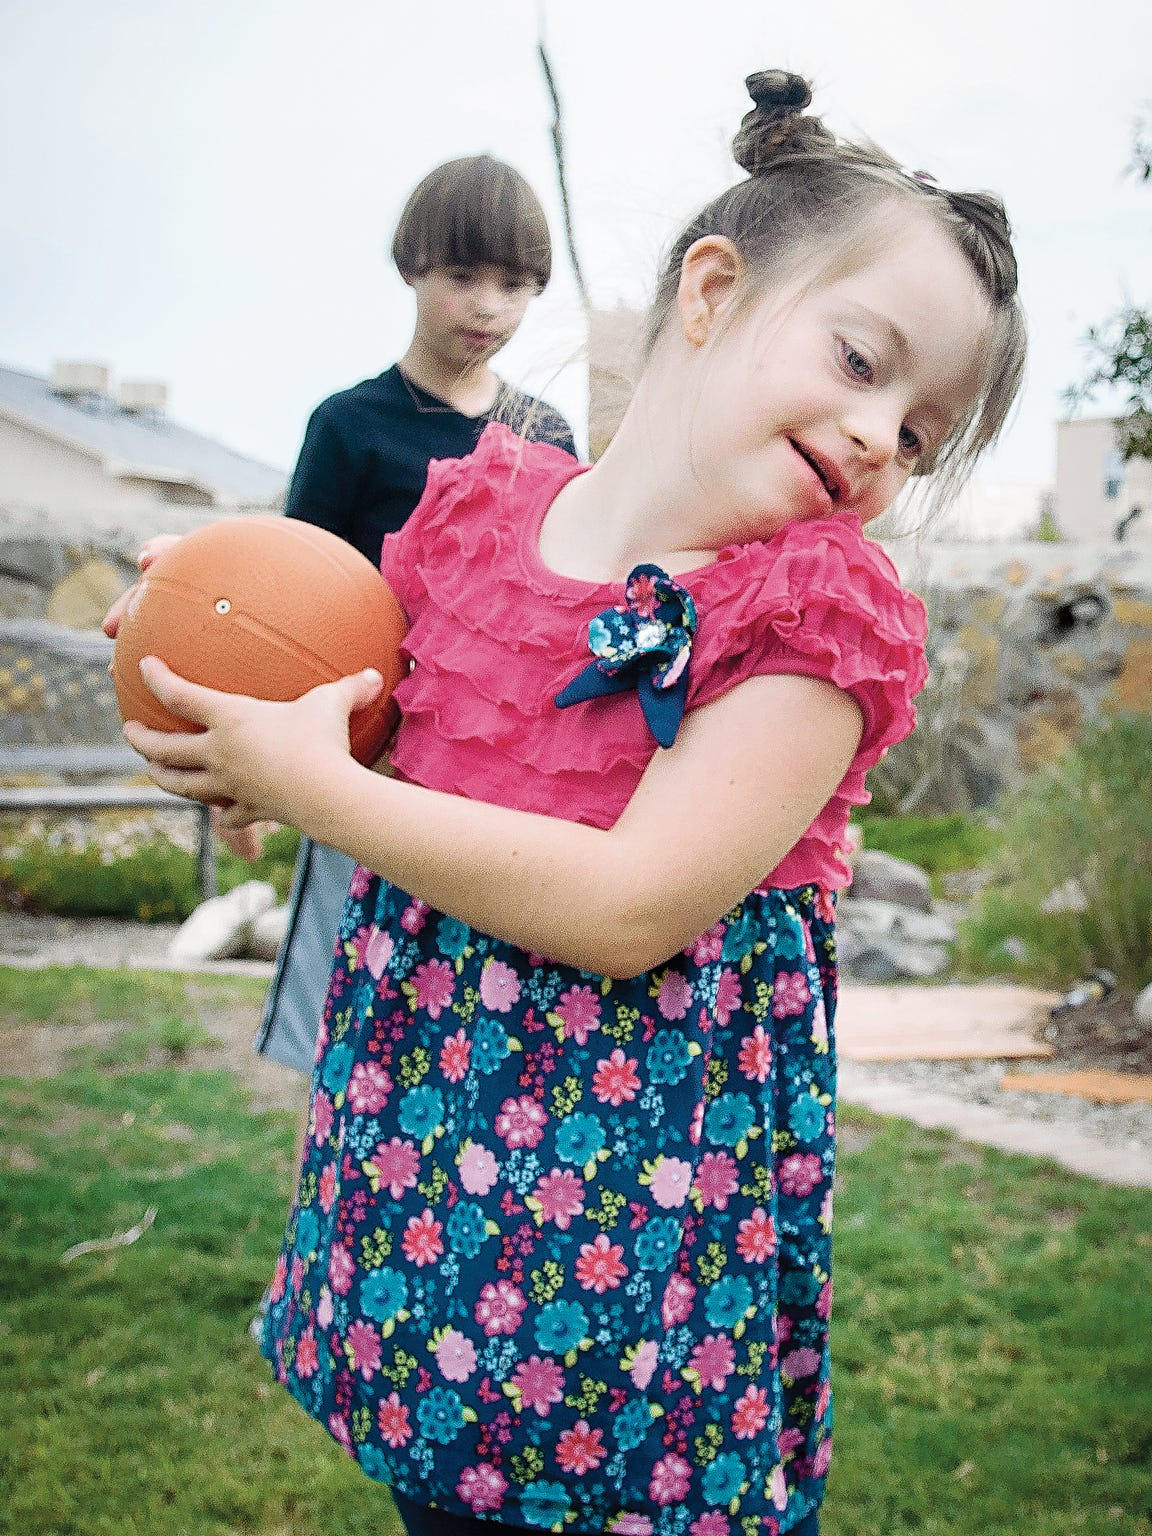 Pictured is 7-year-old Molly Hathway, the daughter